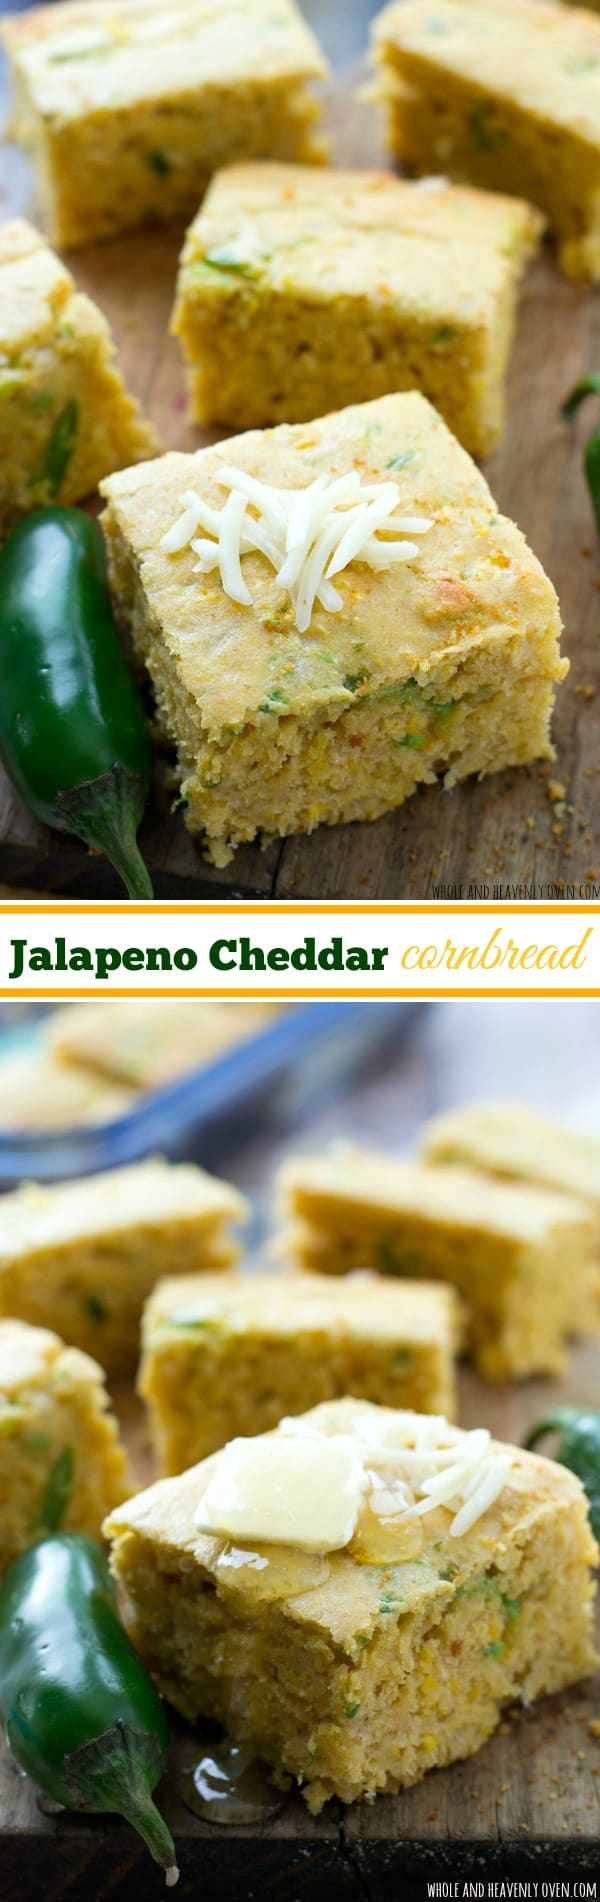 This kickin' cornbread is packed with plenty of jalapeno heat and loaded with lots of melty cheddar cheese---perfect alongside hot bowls of chili for the Superbowl! @WholeHeavenly